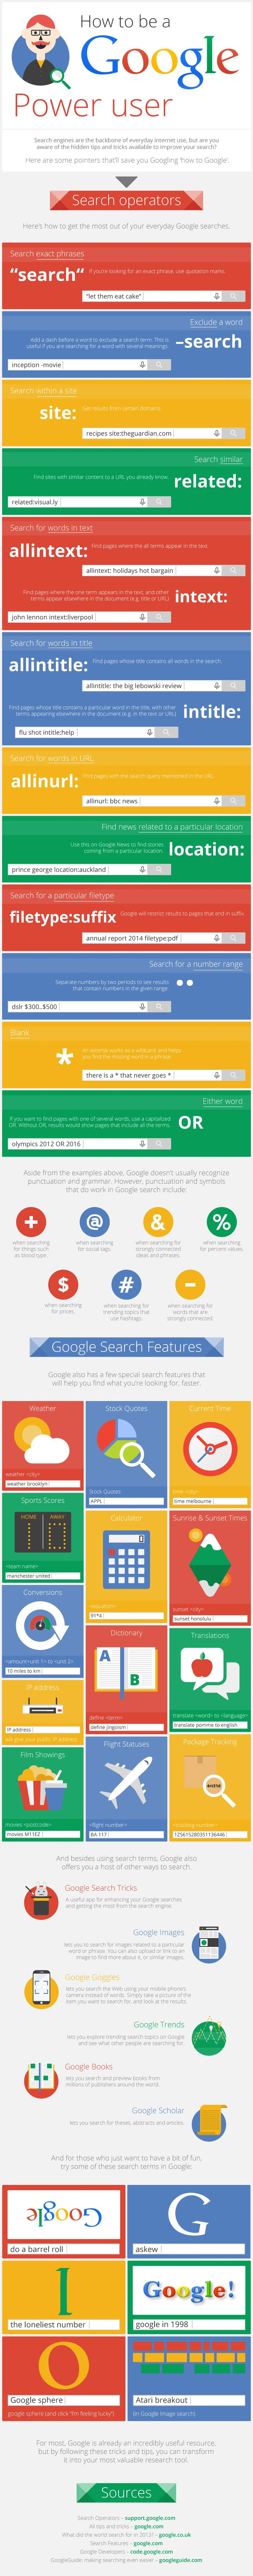 Google Search Jedi Infographic